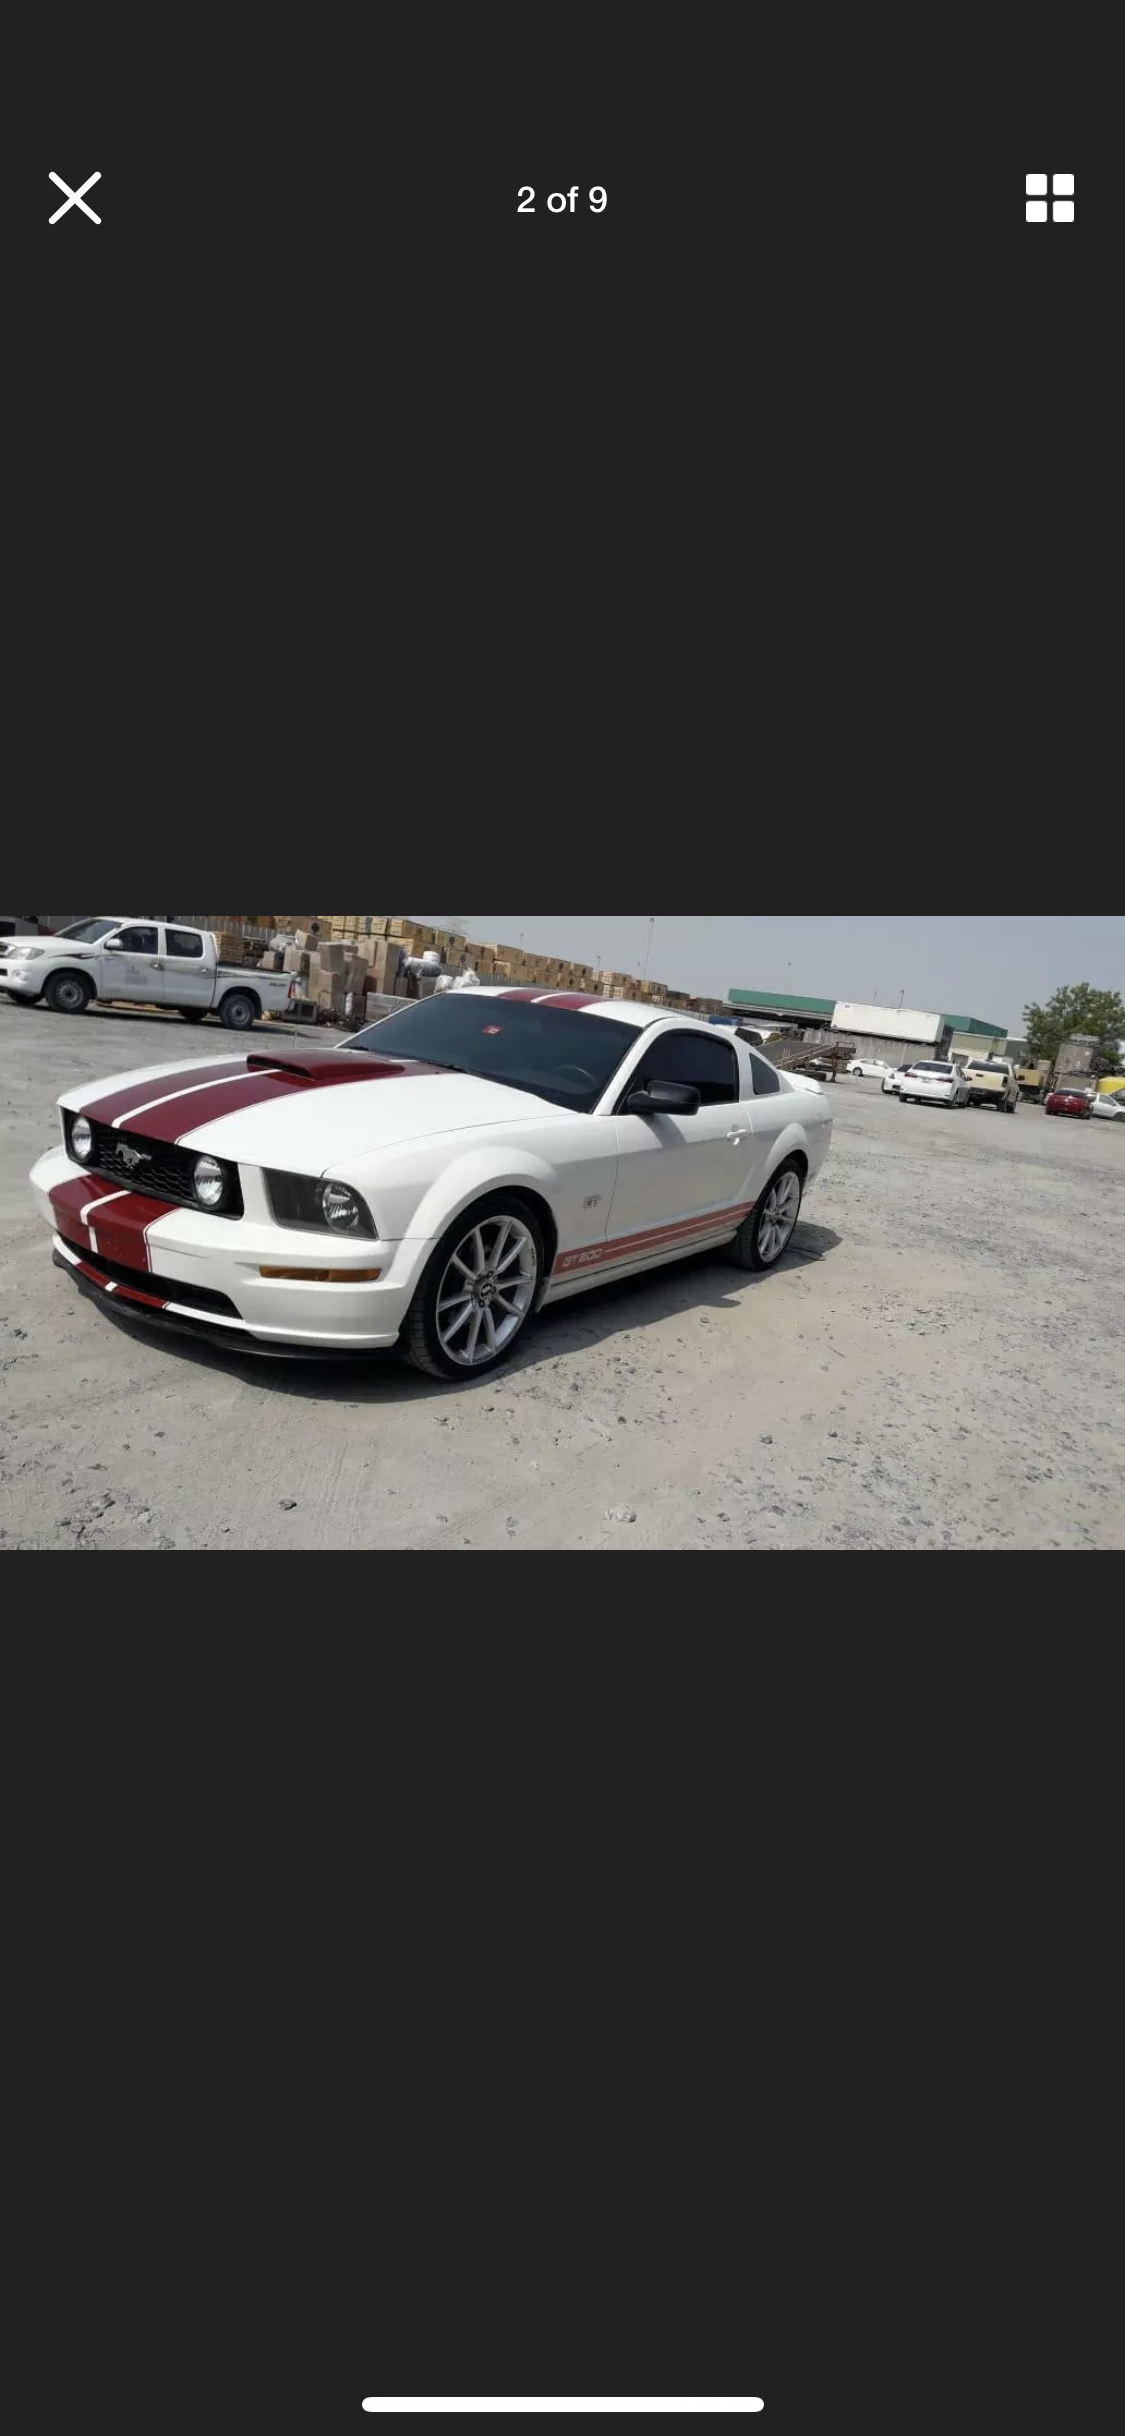 2008 FORD MUSTANG 4.6 V8 GT RARE MANUAL  LHD FRESH IMPORT For Sale (picture 2 of 6)